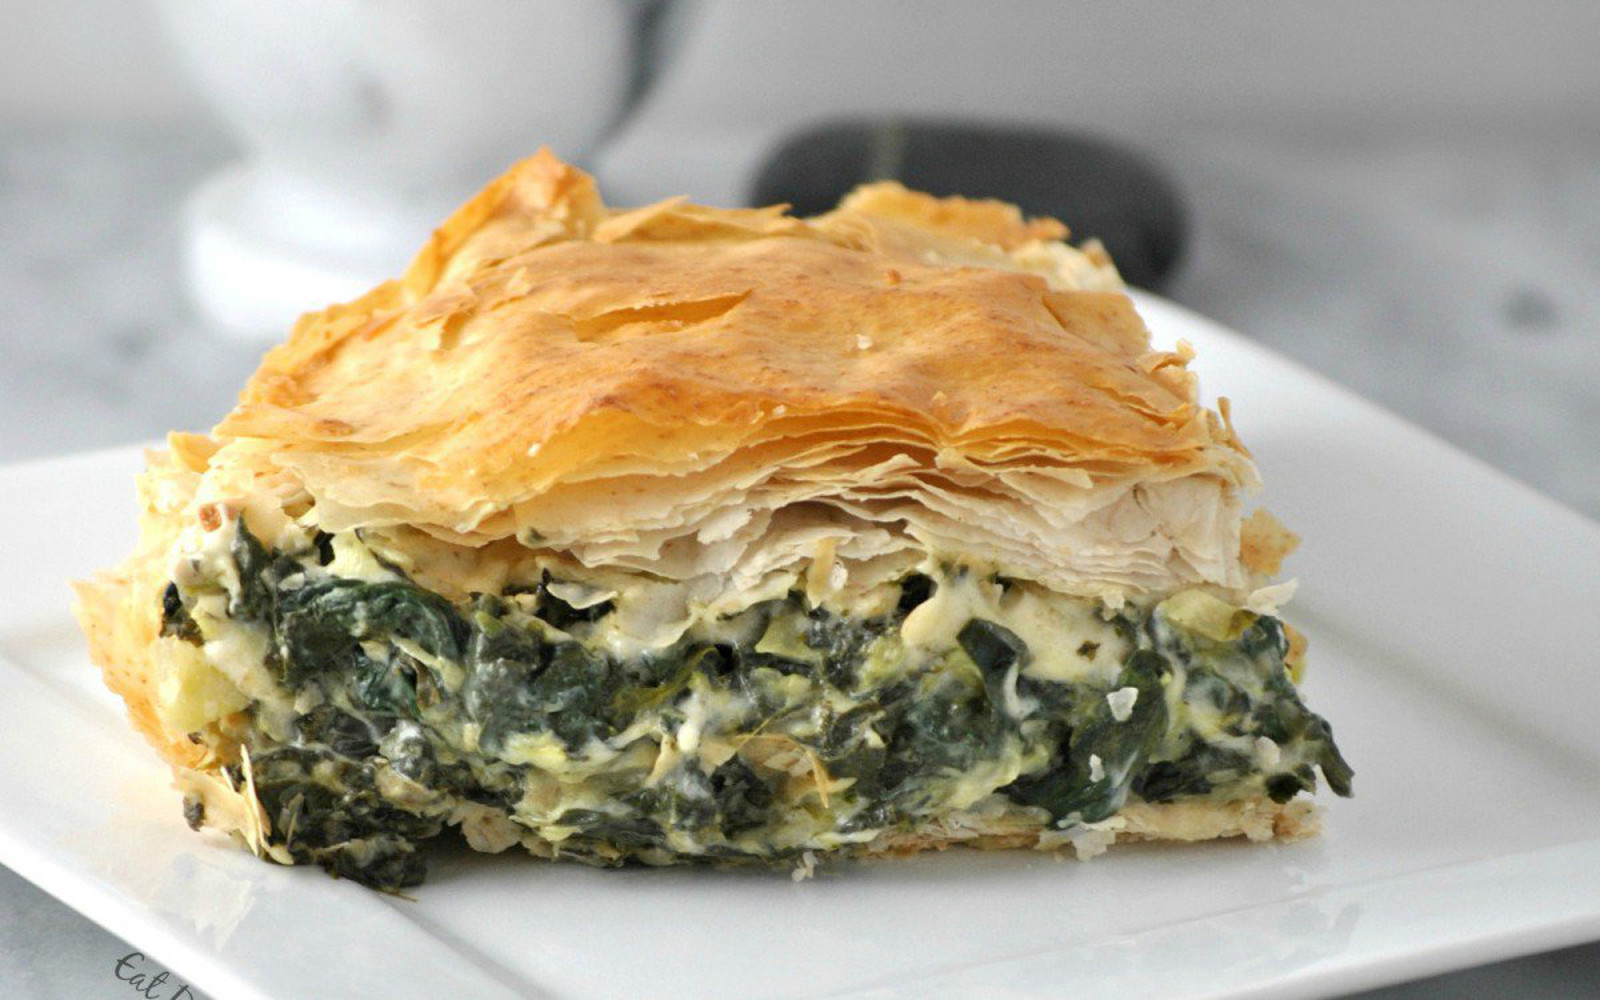 Eat Your Greens! 20 Delicious Spinach Recipes You Have to Make